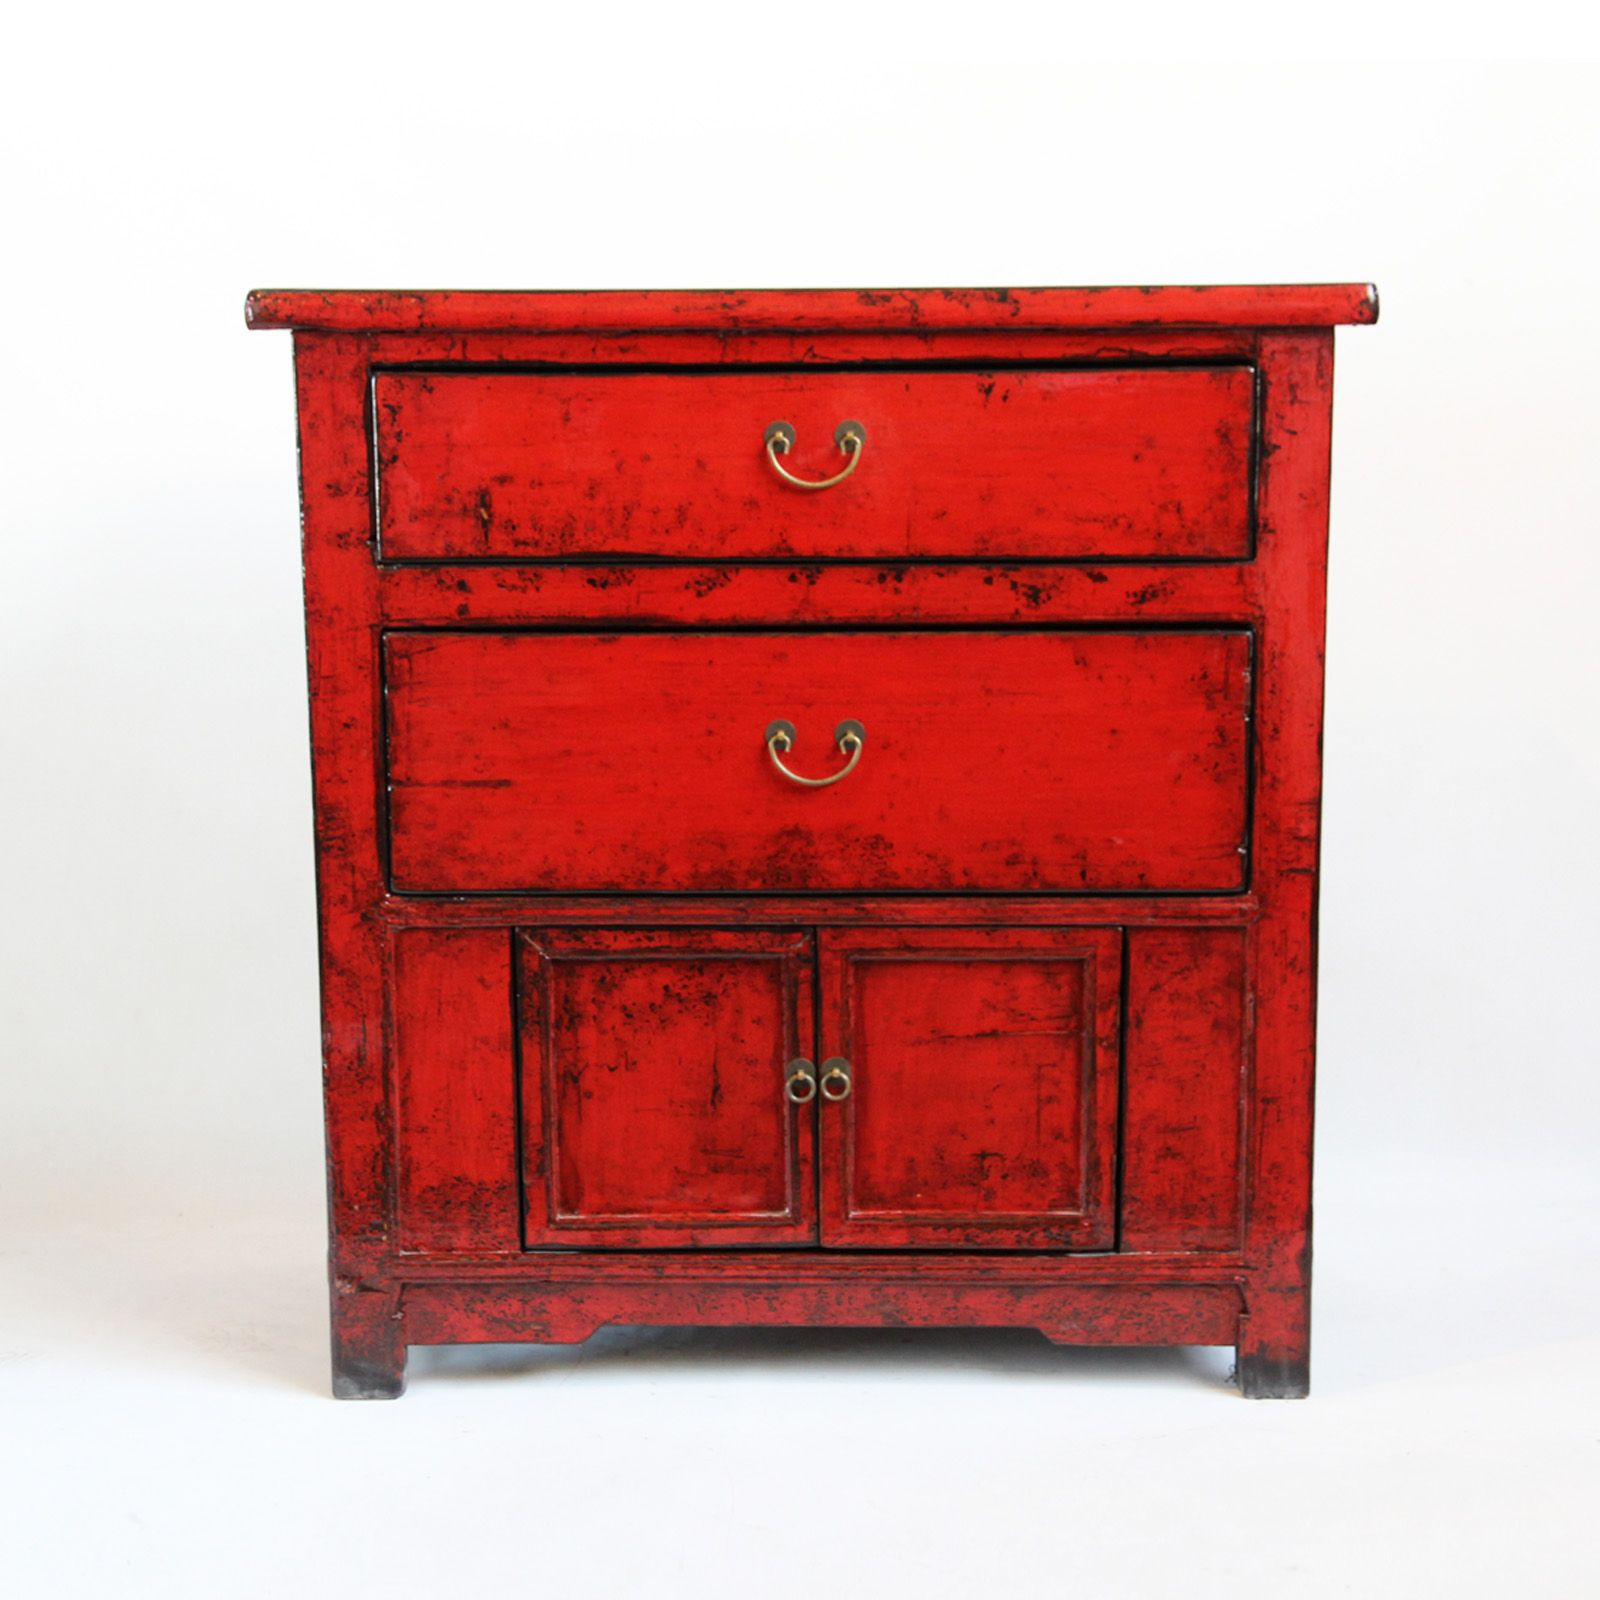 red lacquered furniture. Red Lacquer Side Cabinet With Two Drawers And Lower Cabinet. Distressed Black Lacquered Furniture A